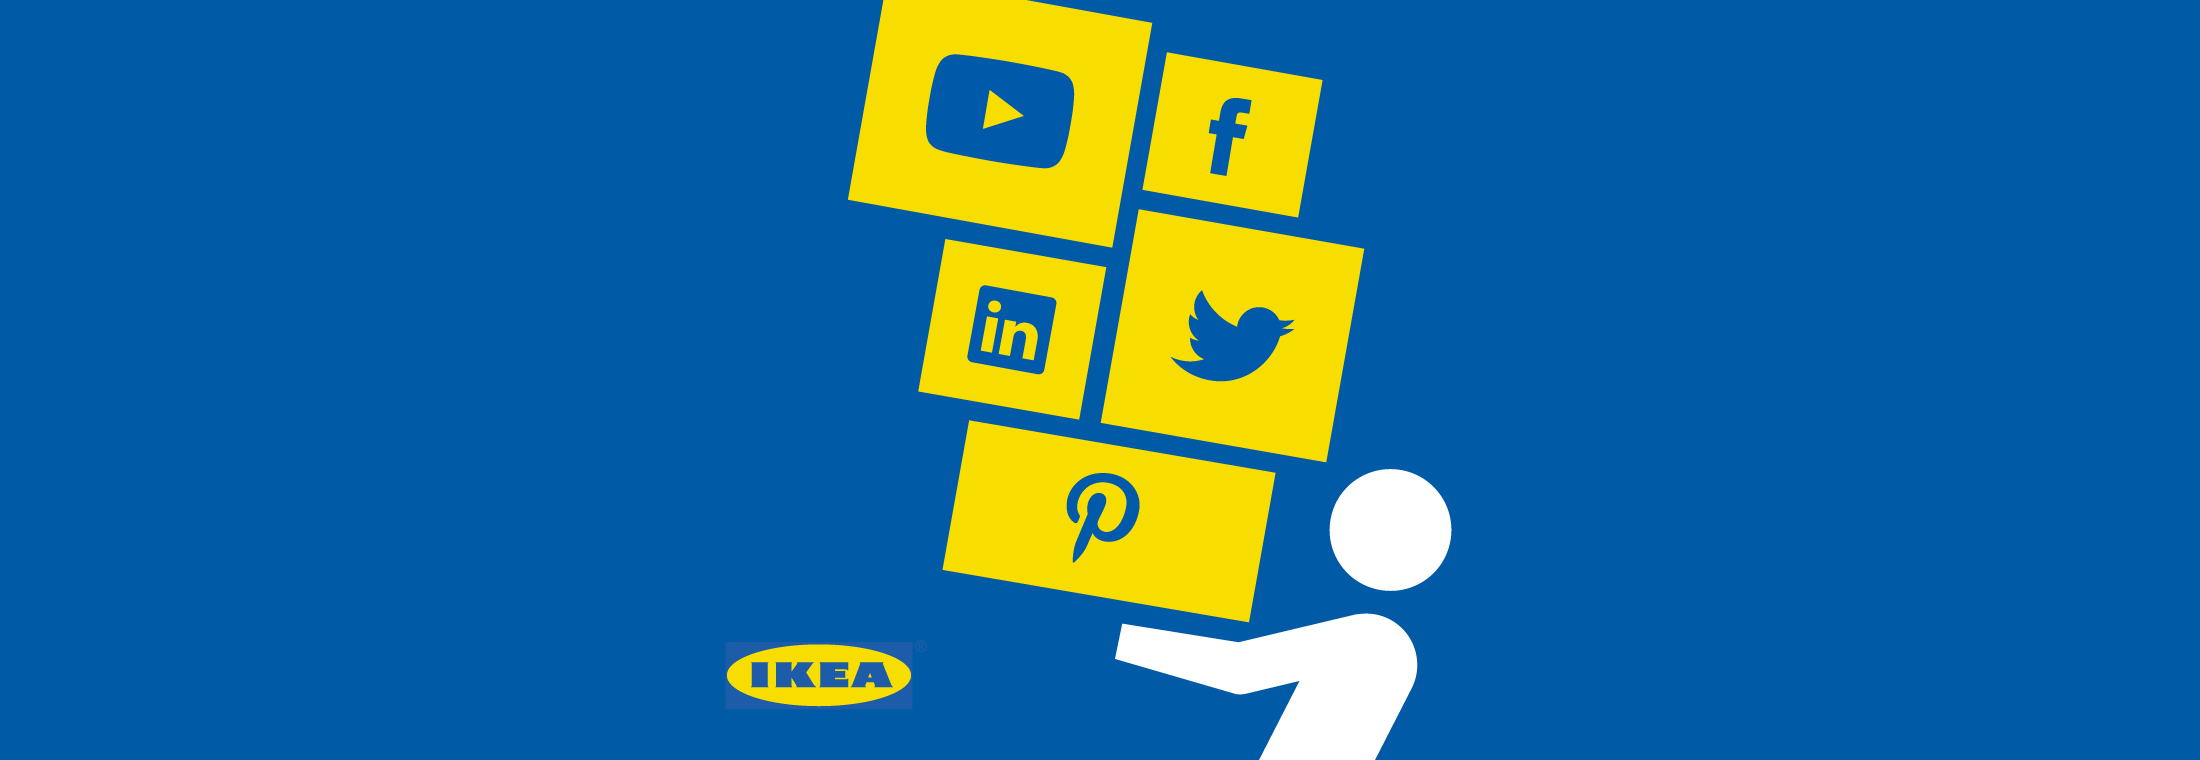 Ebay Mastercard Login >> IKEA & The Socializers: Building Social into the Heart of a Global Business | Brandwatch